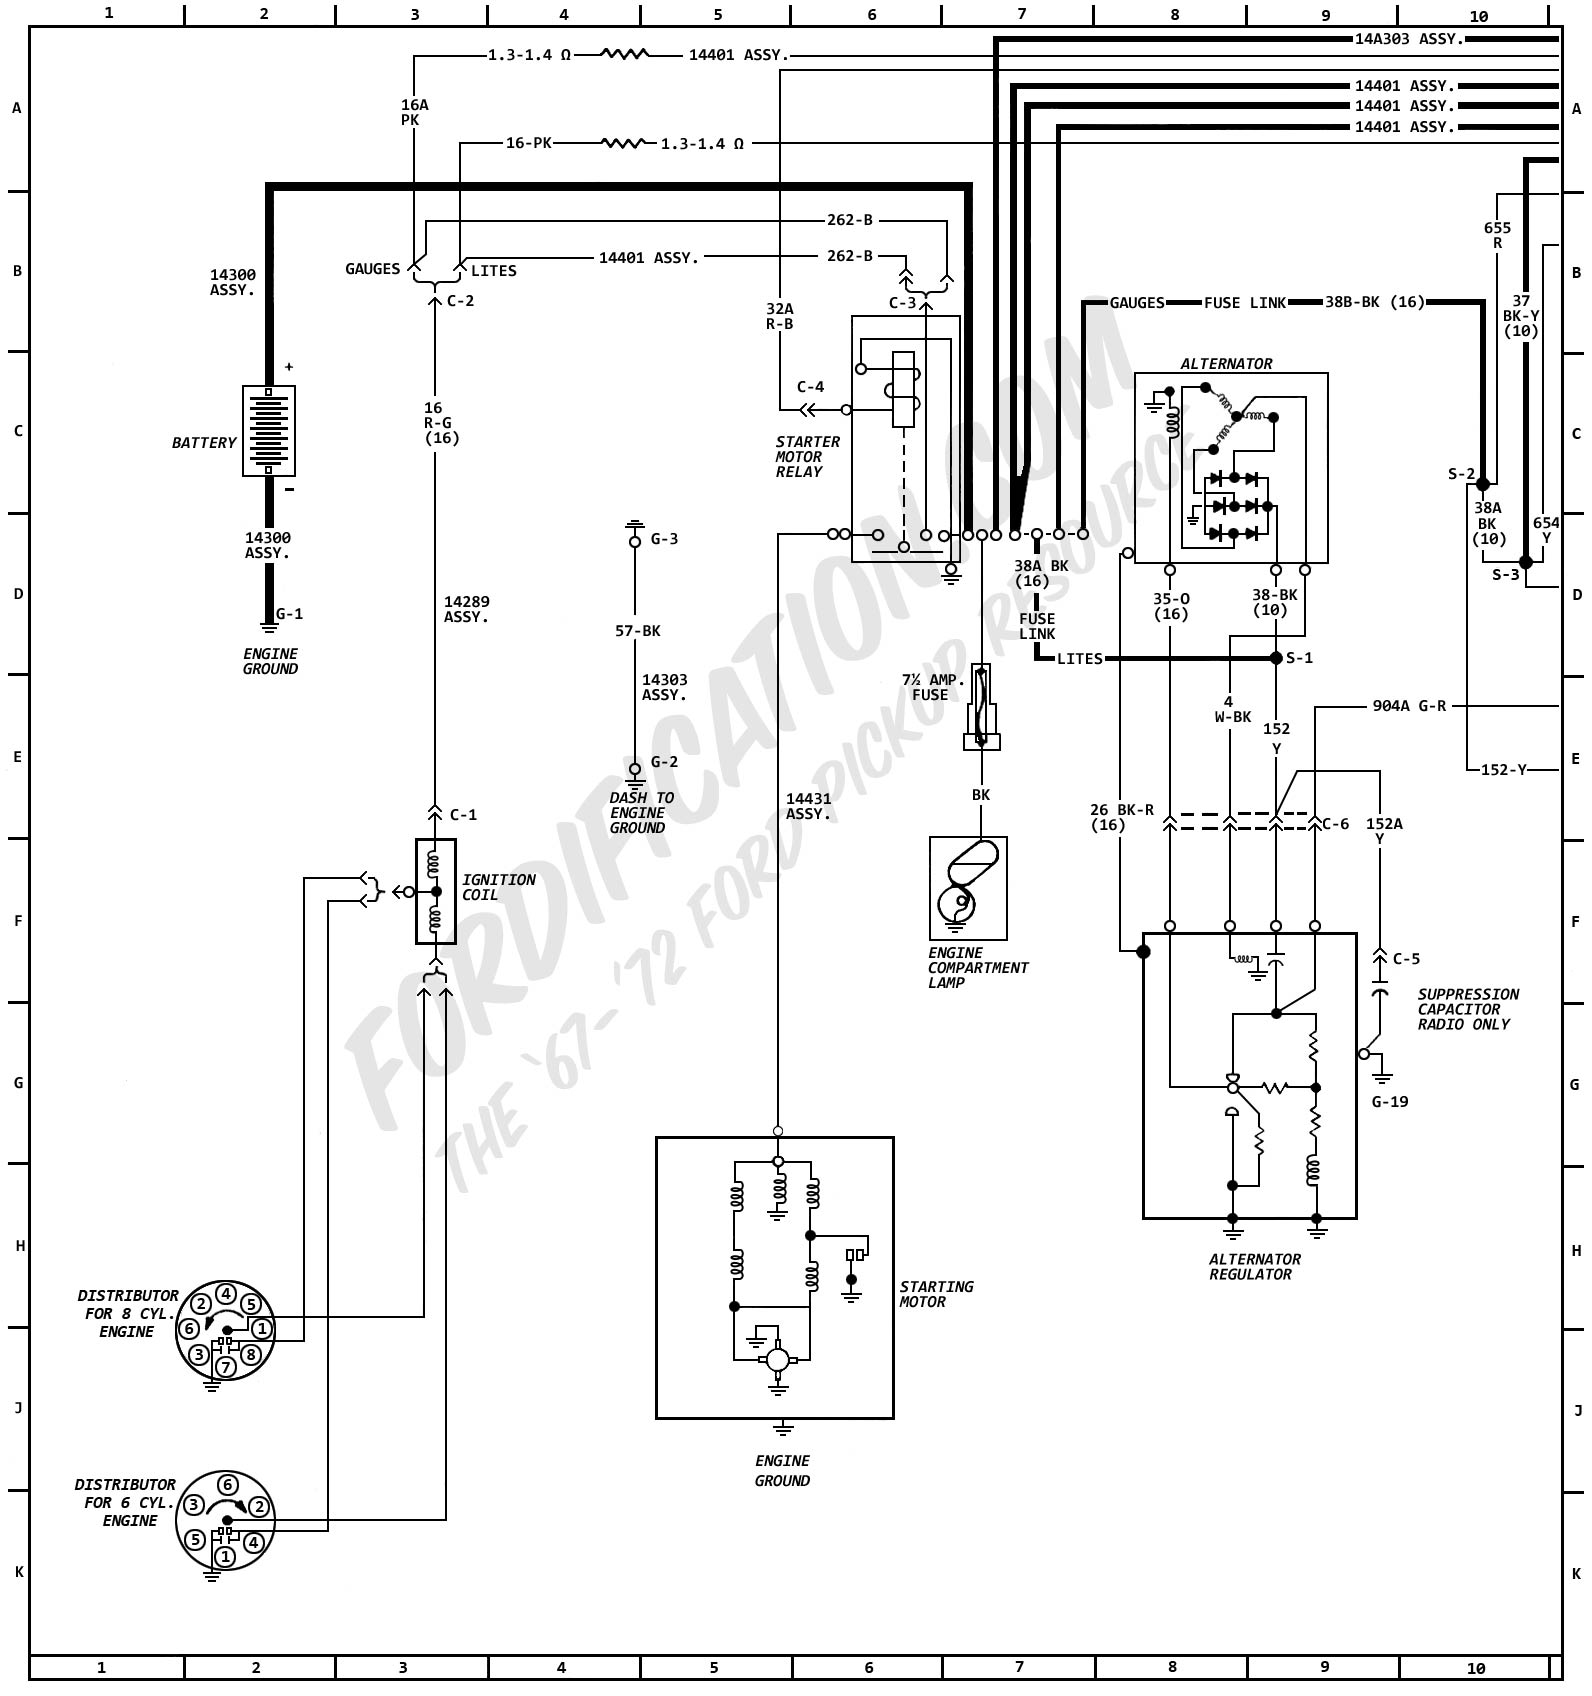 1972 ford truck wiring diagrams fordification com 1 or 2